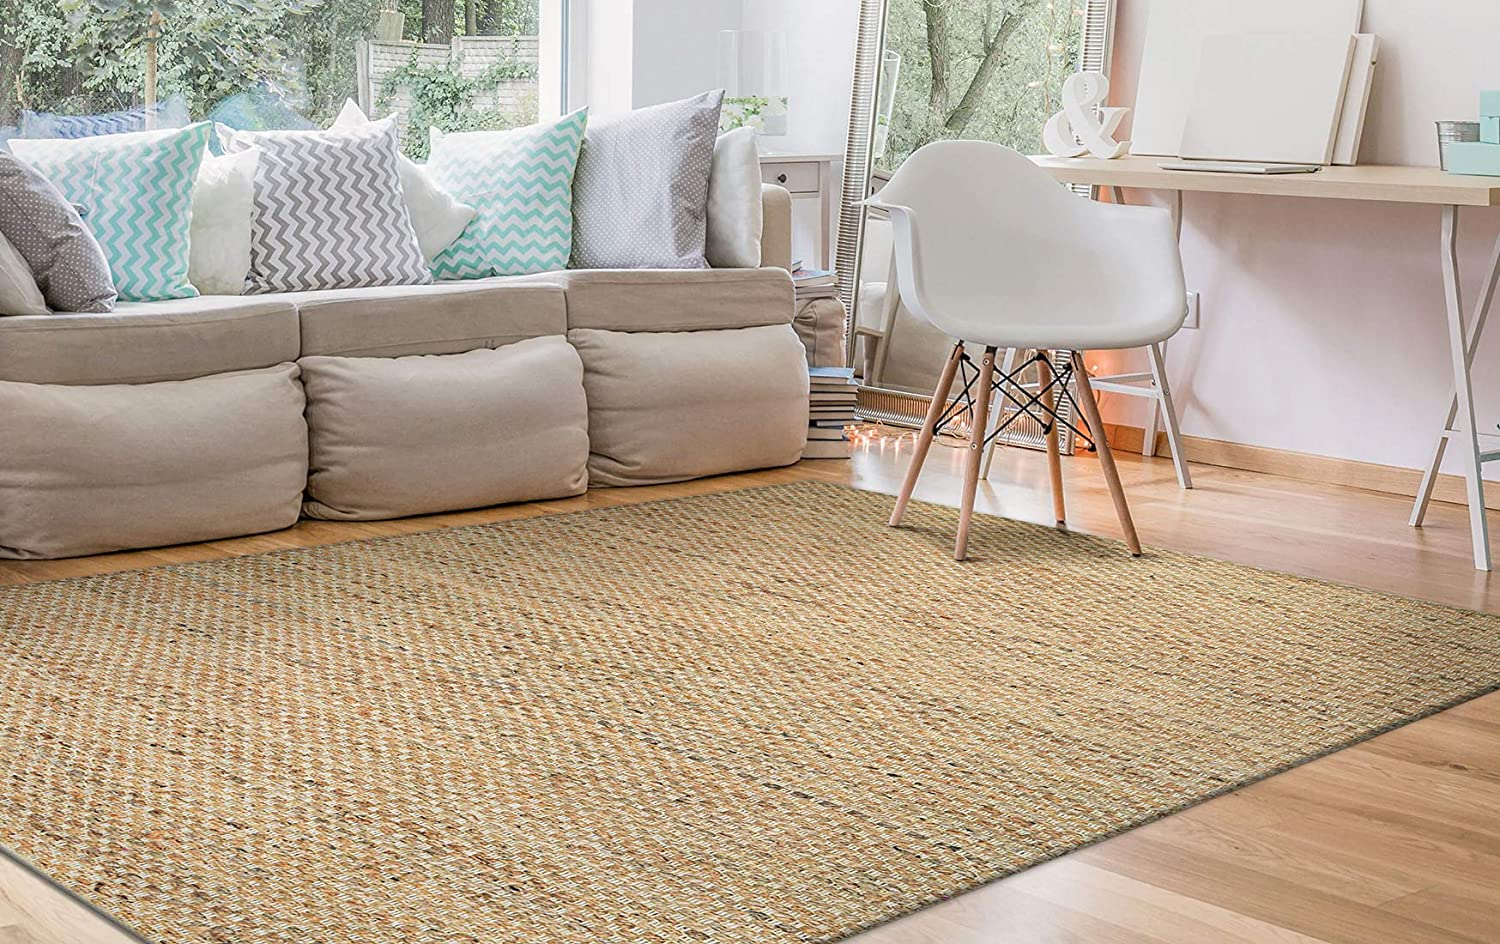 Couristan Nature's Elements Desert Area Rug Credence Ca 5' Natural Seasonal Wrap Introduction x 3'